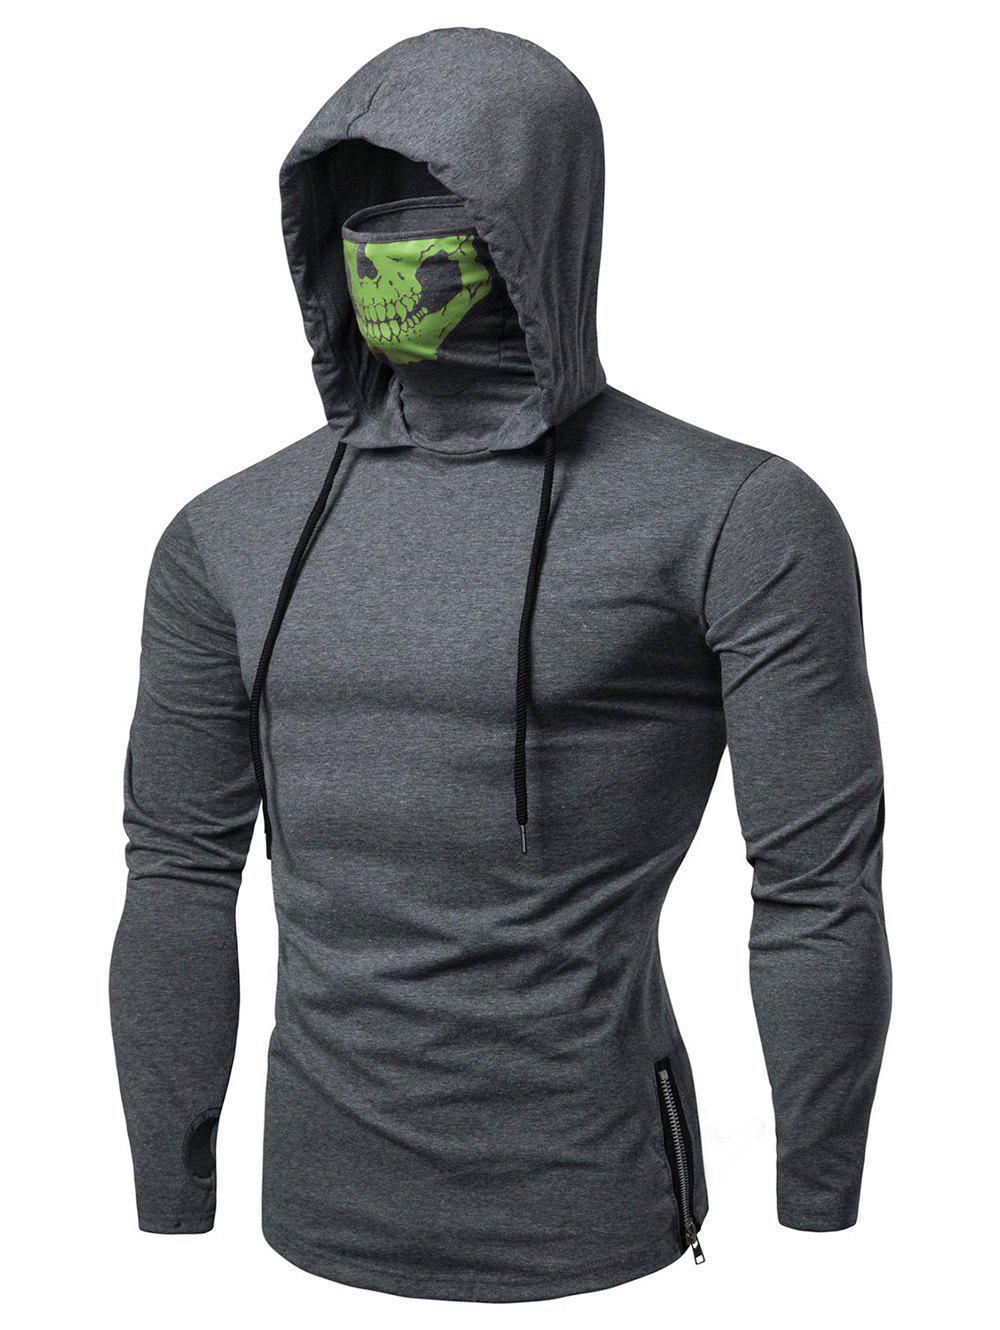 7e145671 56% OFF] Fashion Drawstring Scare Mask Hoodie For Man | Rosegal